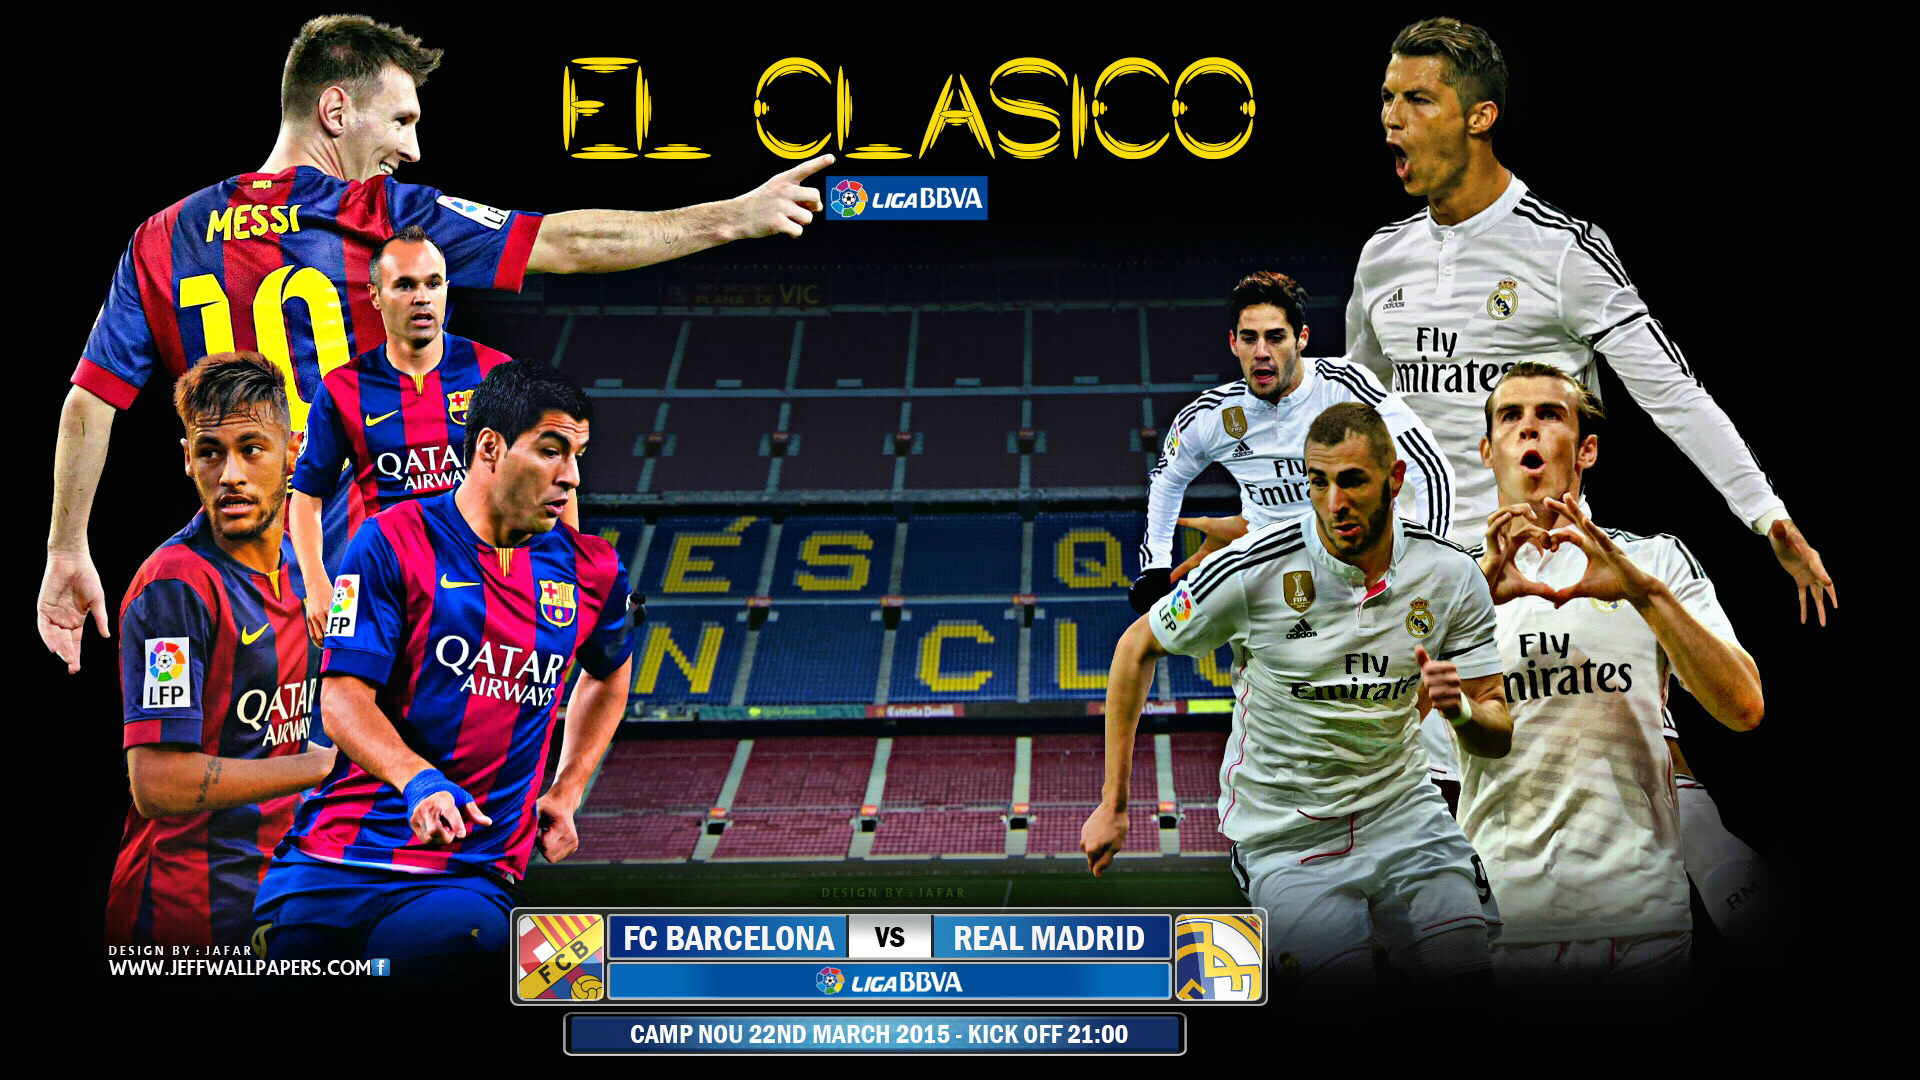 FC Barcelona vs Real Madrid El Clasico 22 March 2015 Camp Nou HD 1920x1080